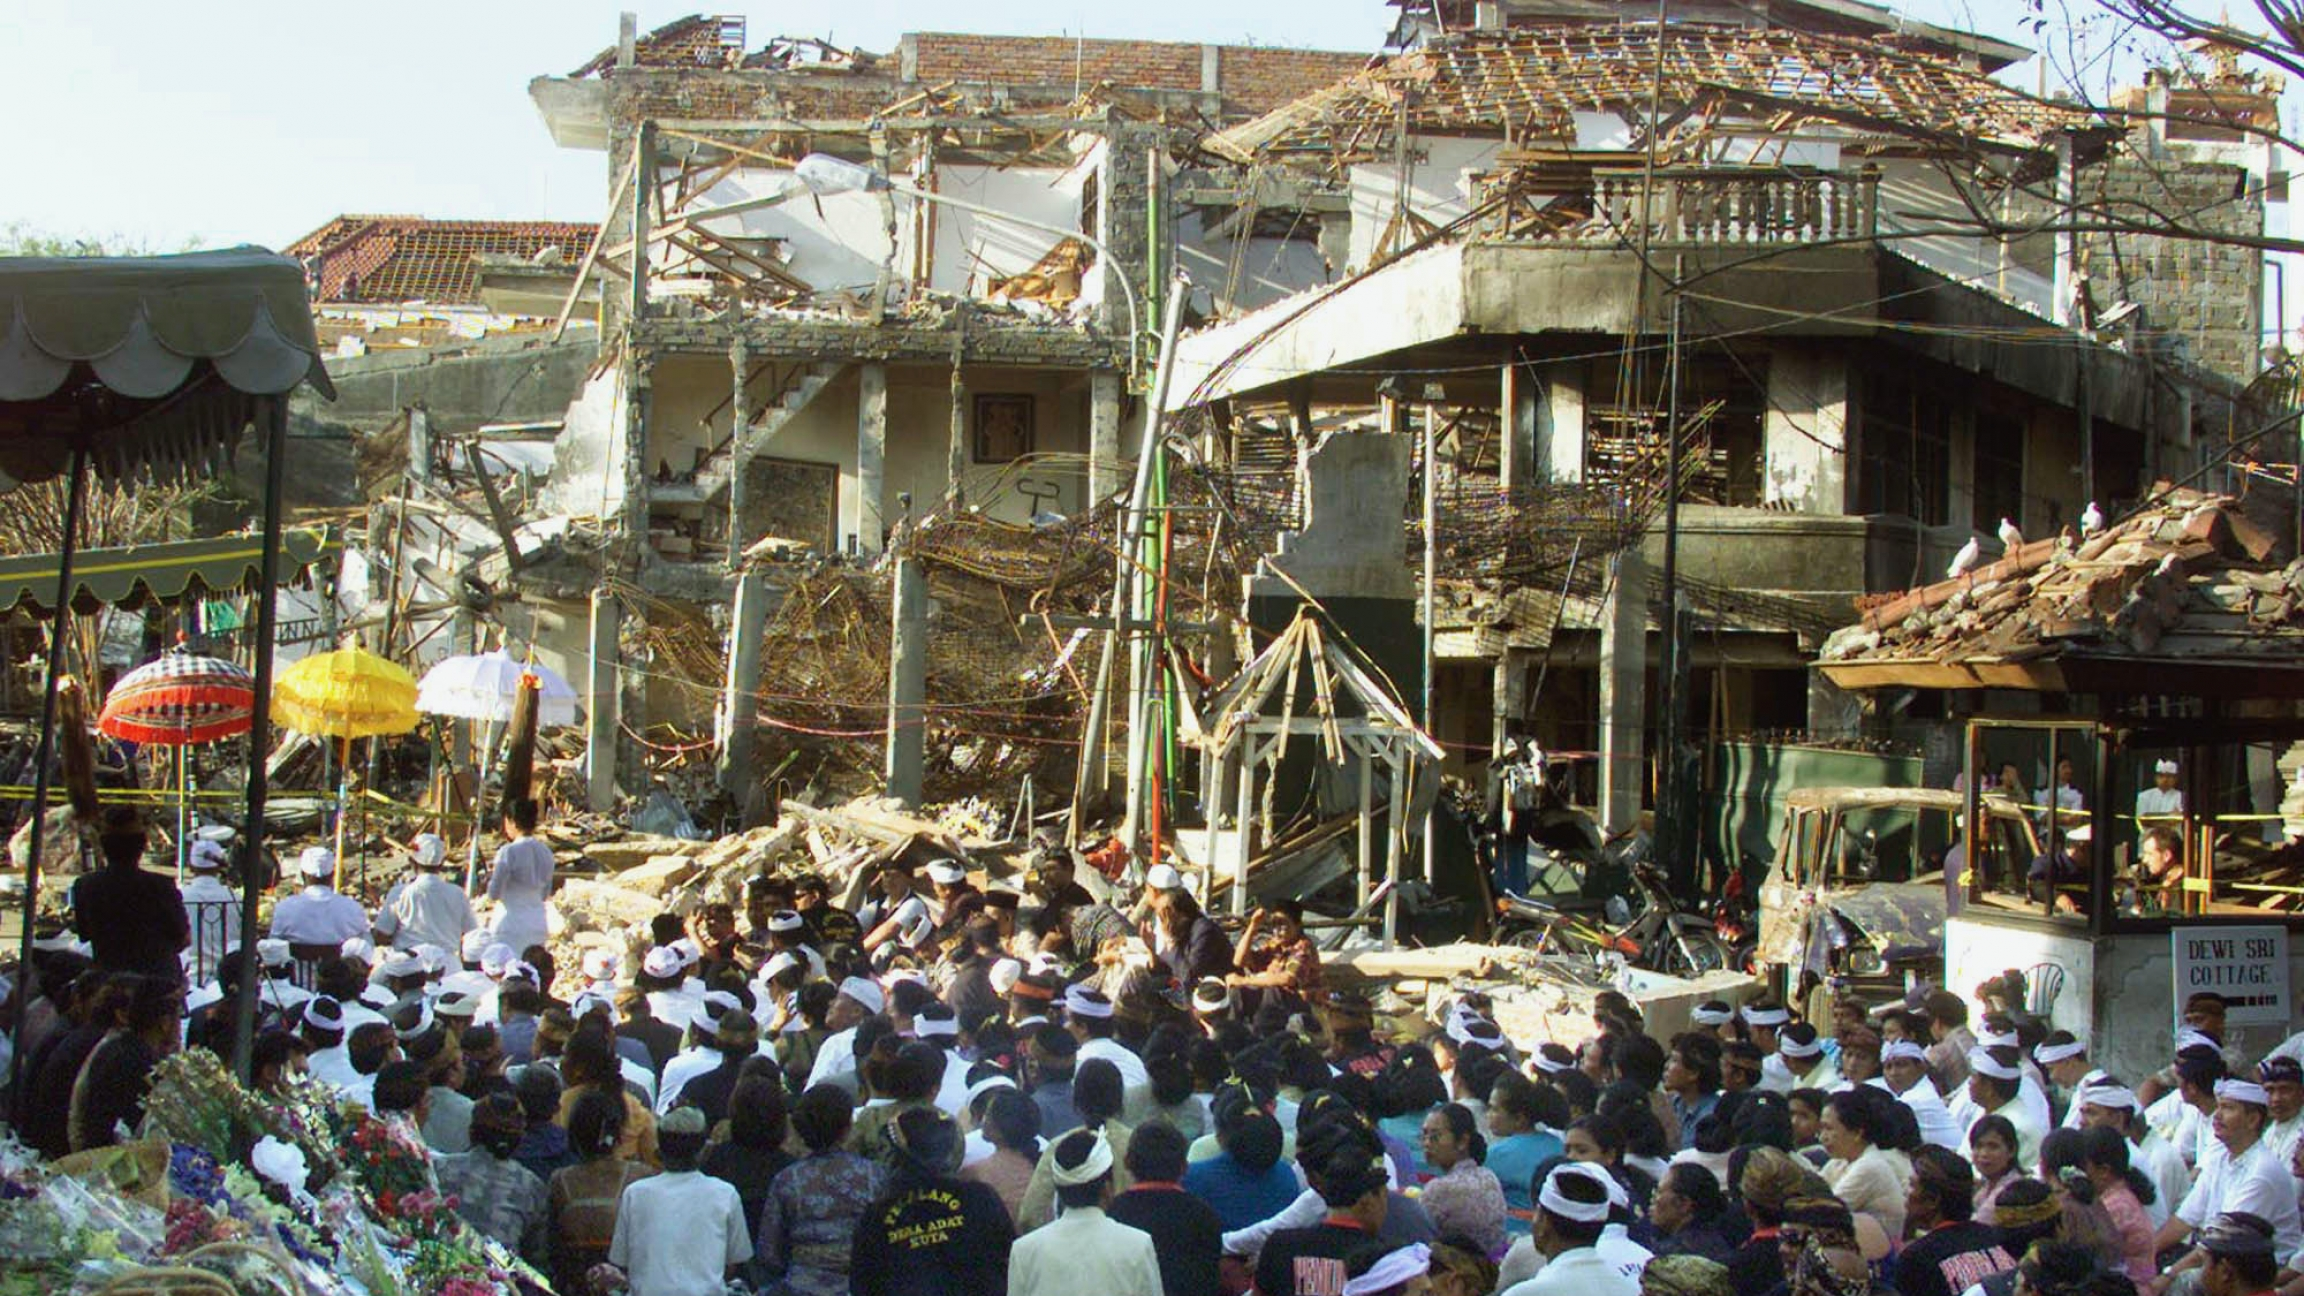 Local Balinese offer prayers for the victims at the site of the bomb blast in Kuta, Bali, Oct. 18, 2002. Nearly 200 people were killed and more than 300 were injured in the nightclub bombing.